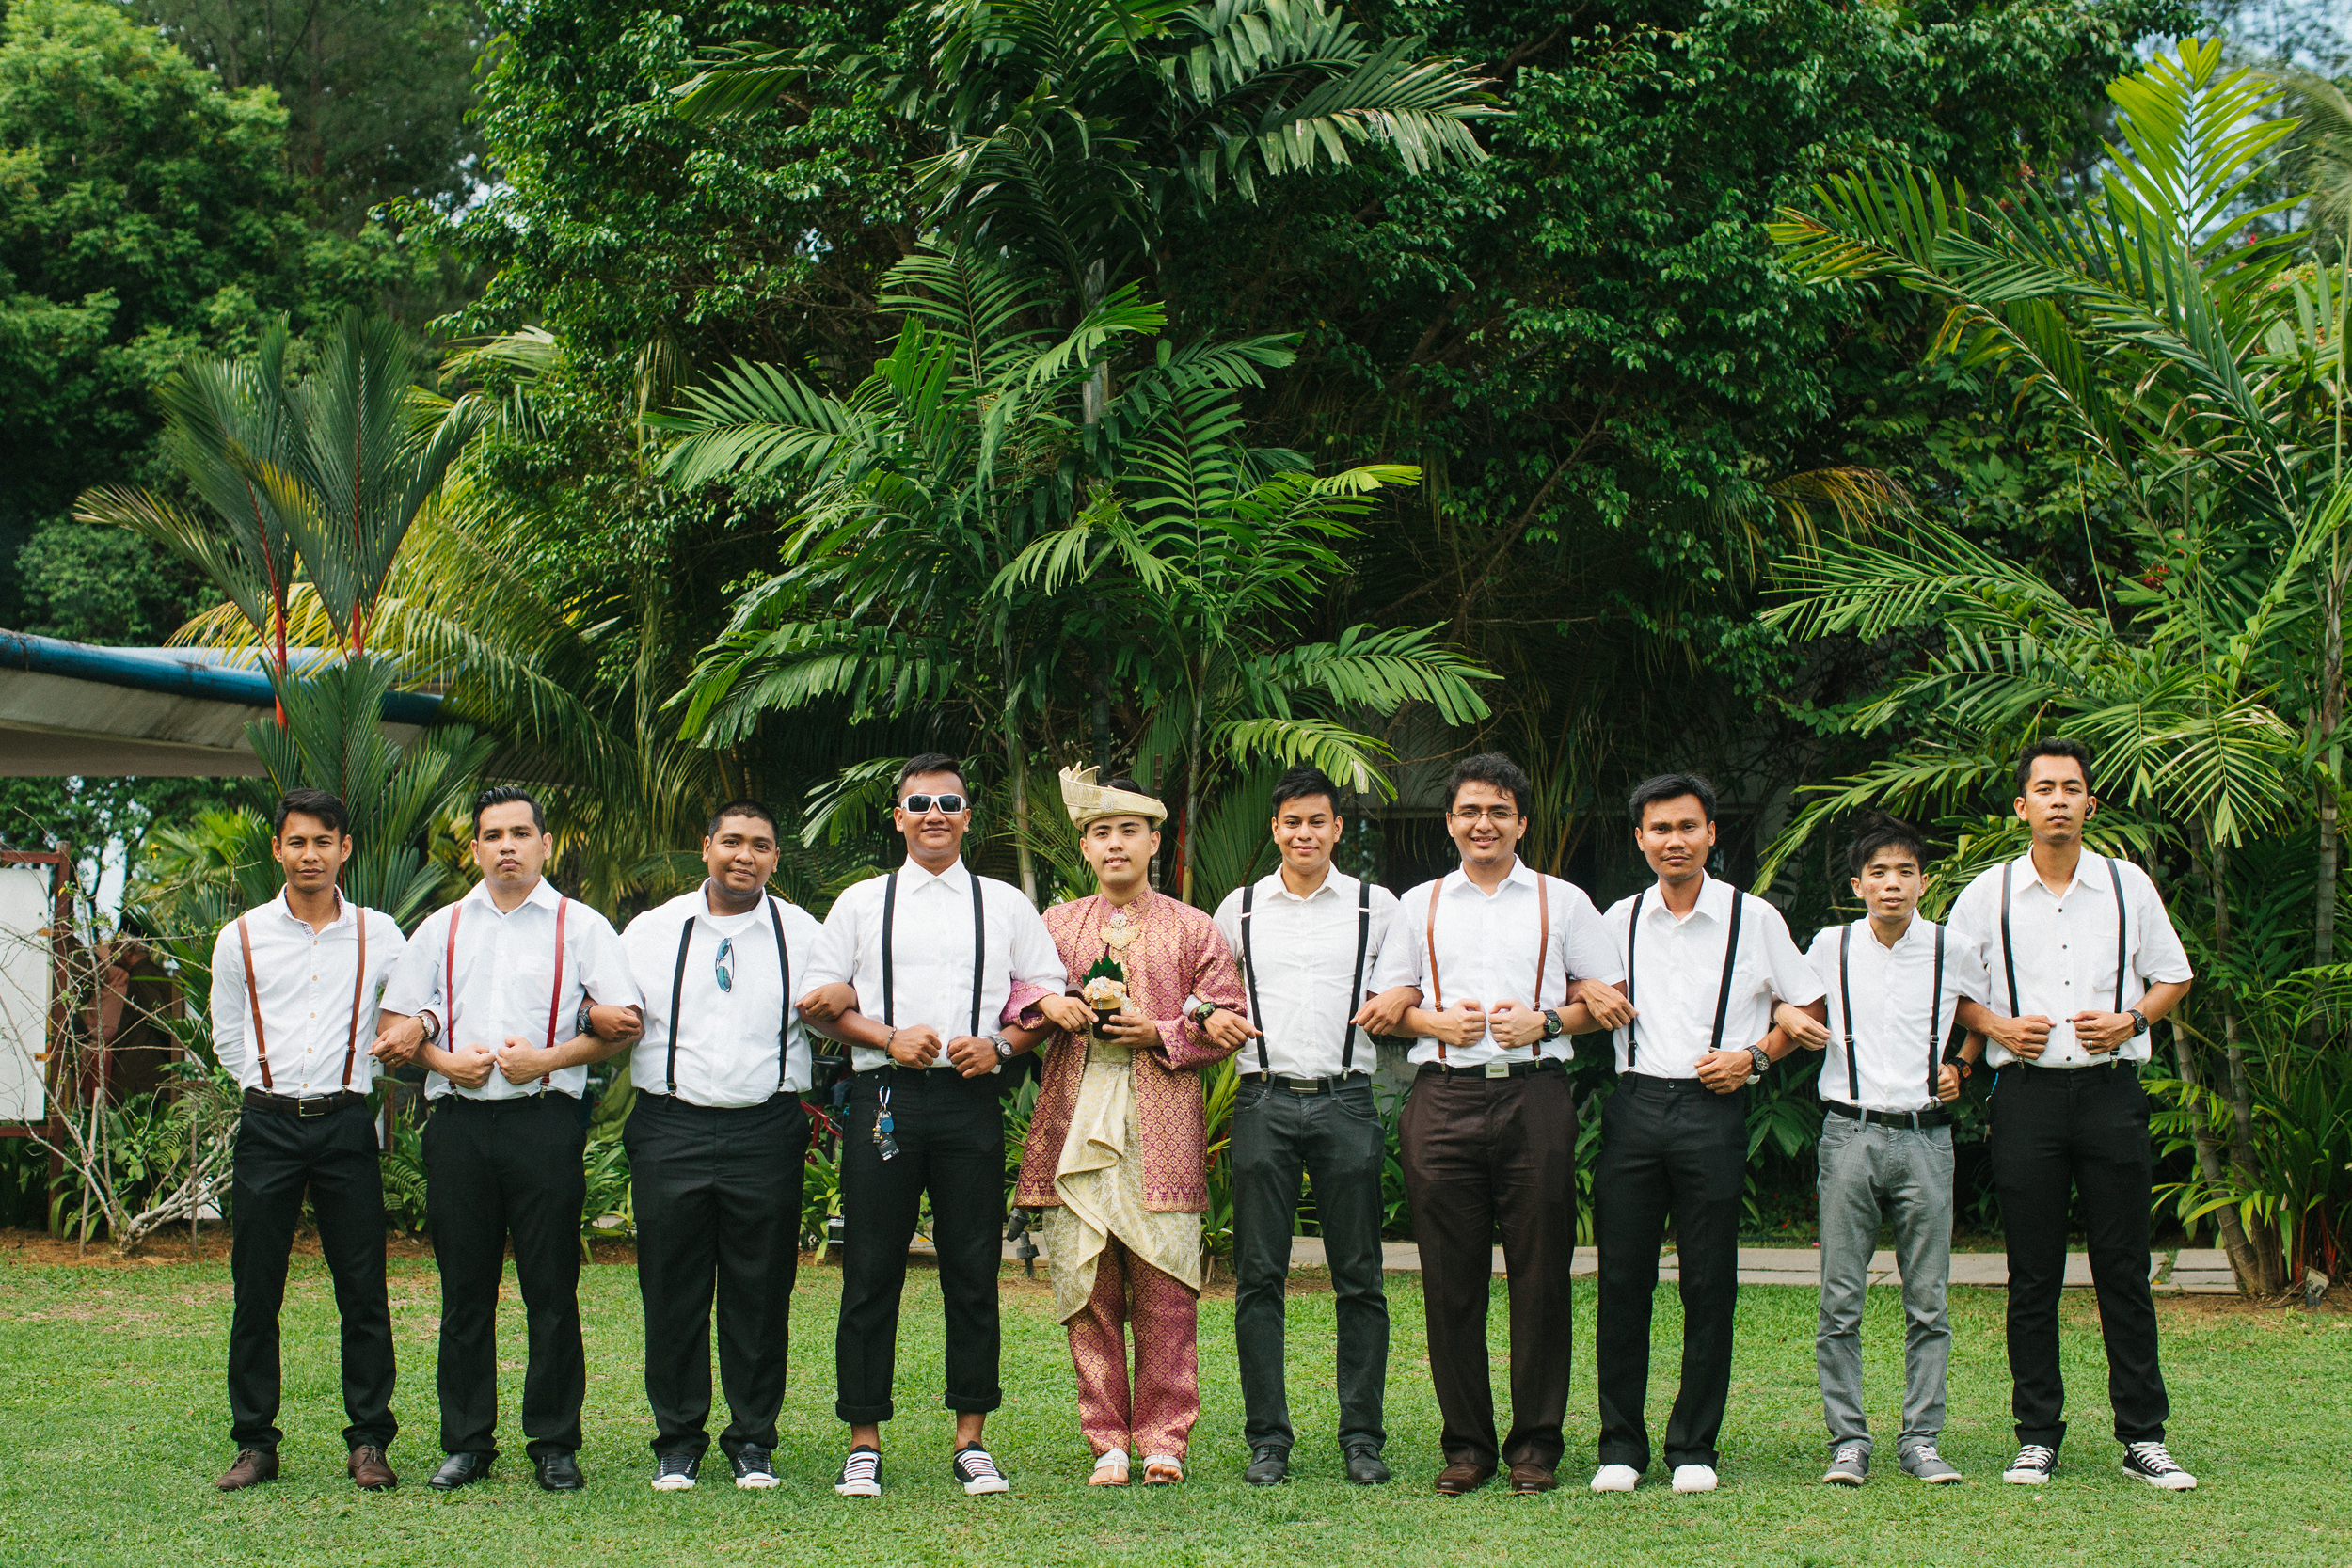 singapore-wedding-photographer-wemadethese-aisyah-helmi-37.jpg